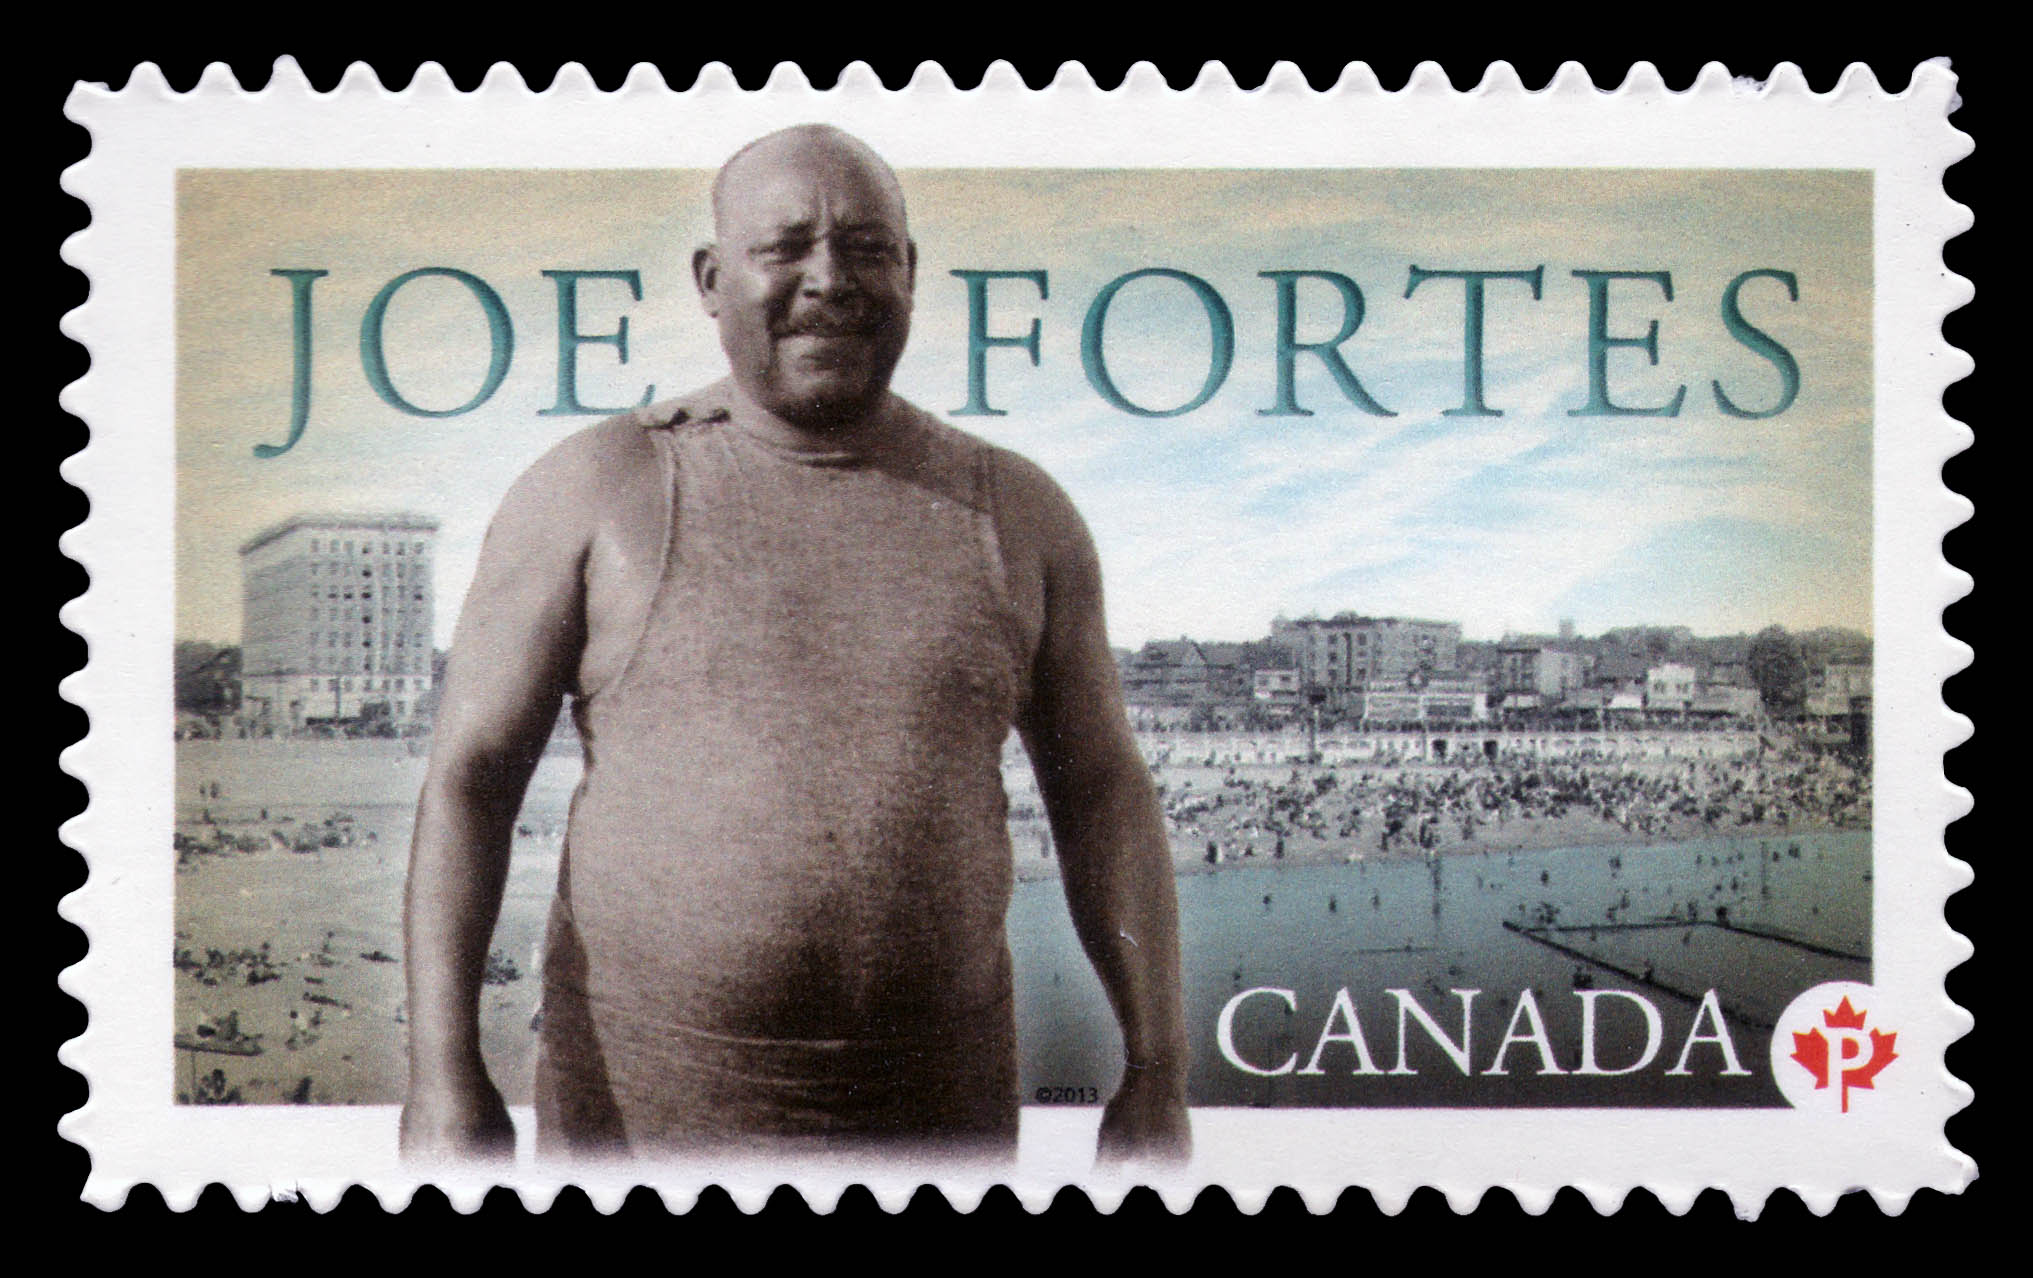 Joe Fortes Canada Postage Stamp | Black History Month